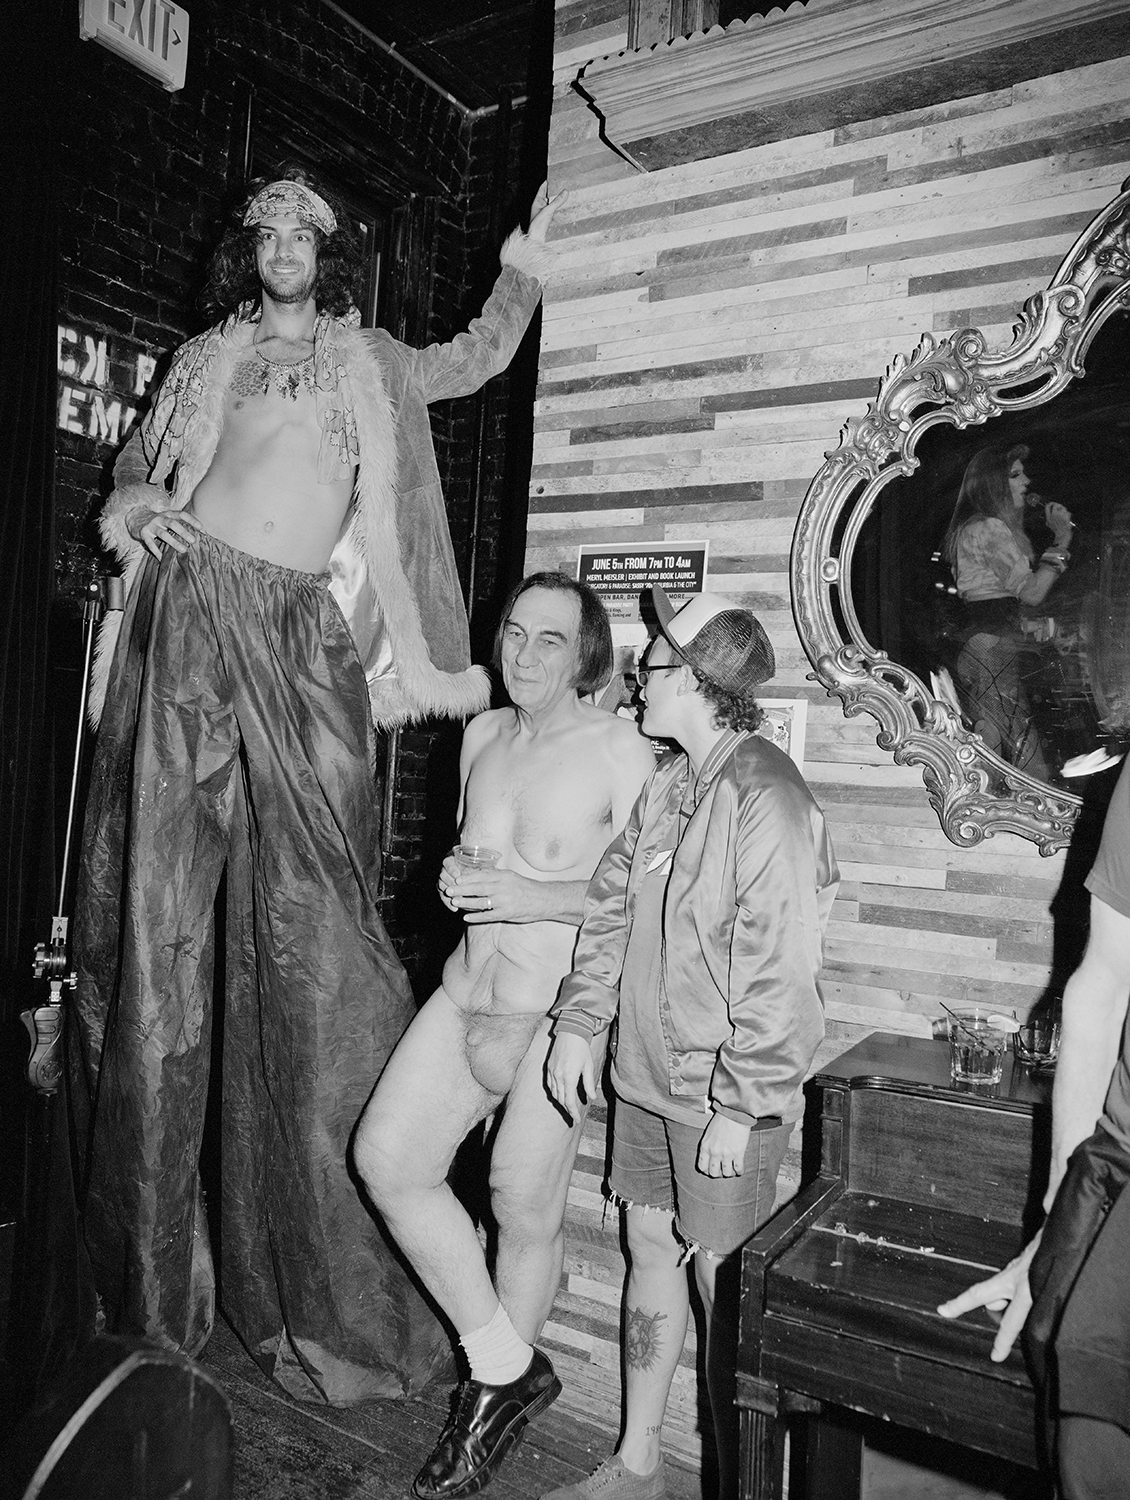 On Stilts Next To Naked Man, Bizarre Bushwick